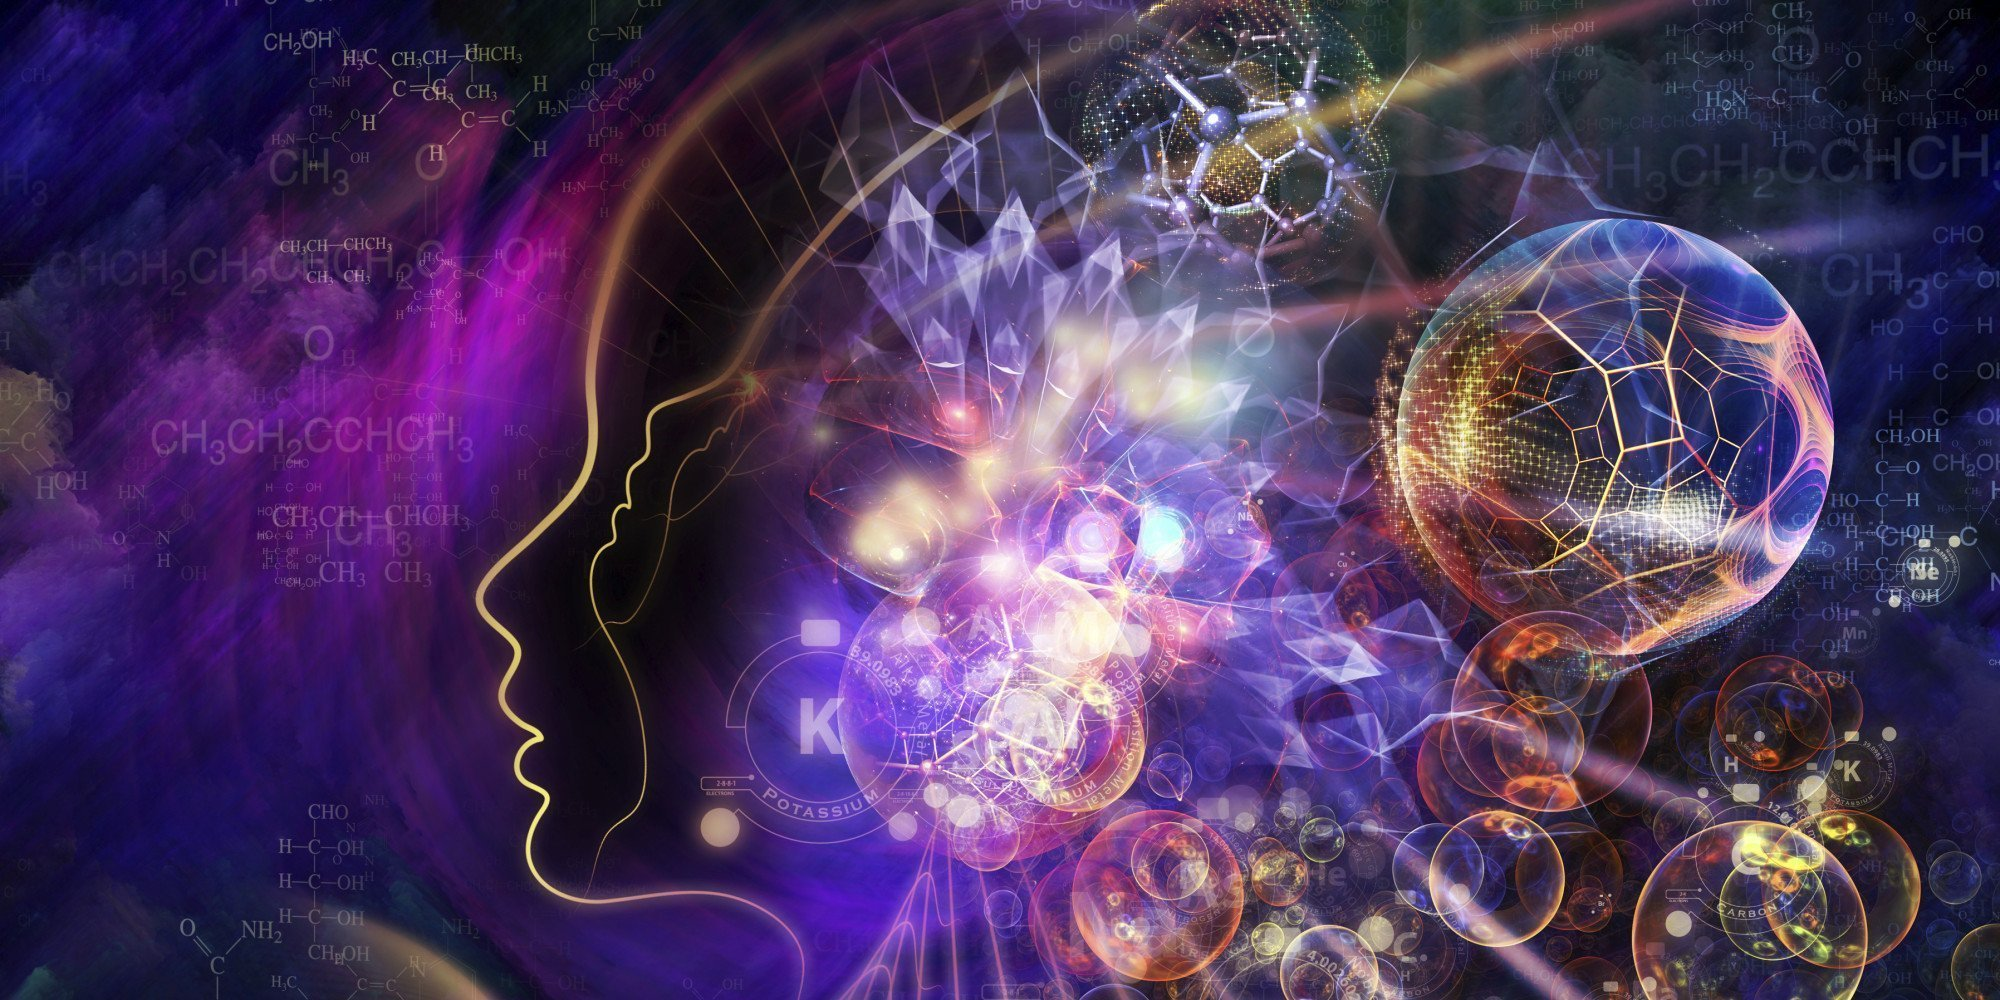 7 Psychedelic Studies From 2015 You Must Read About